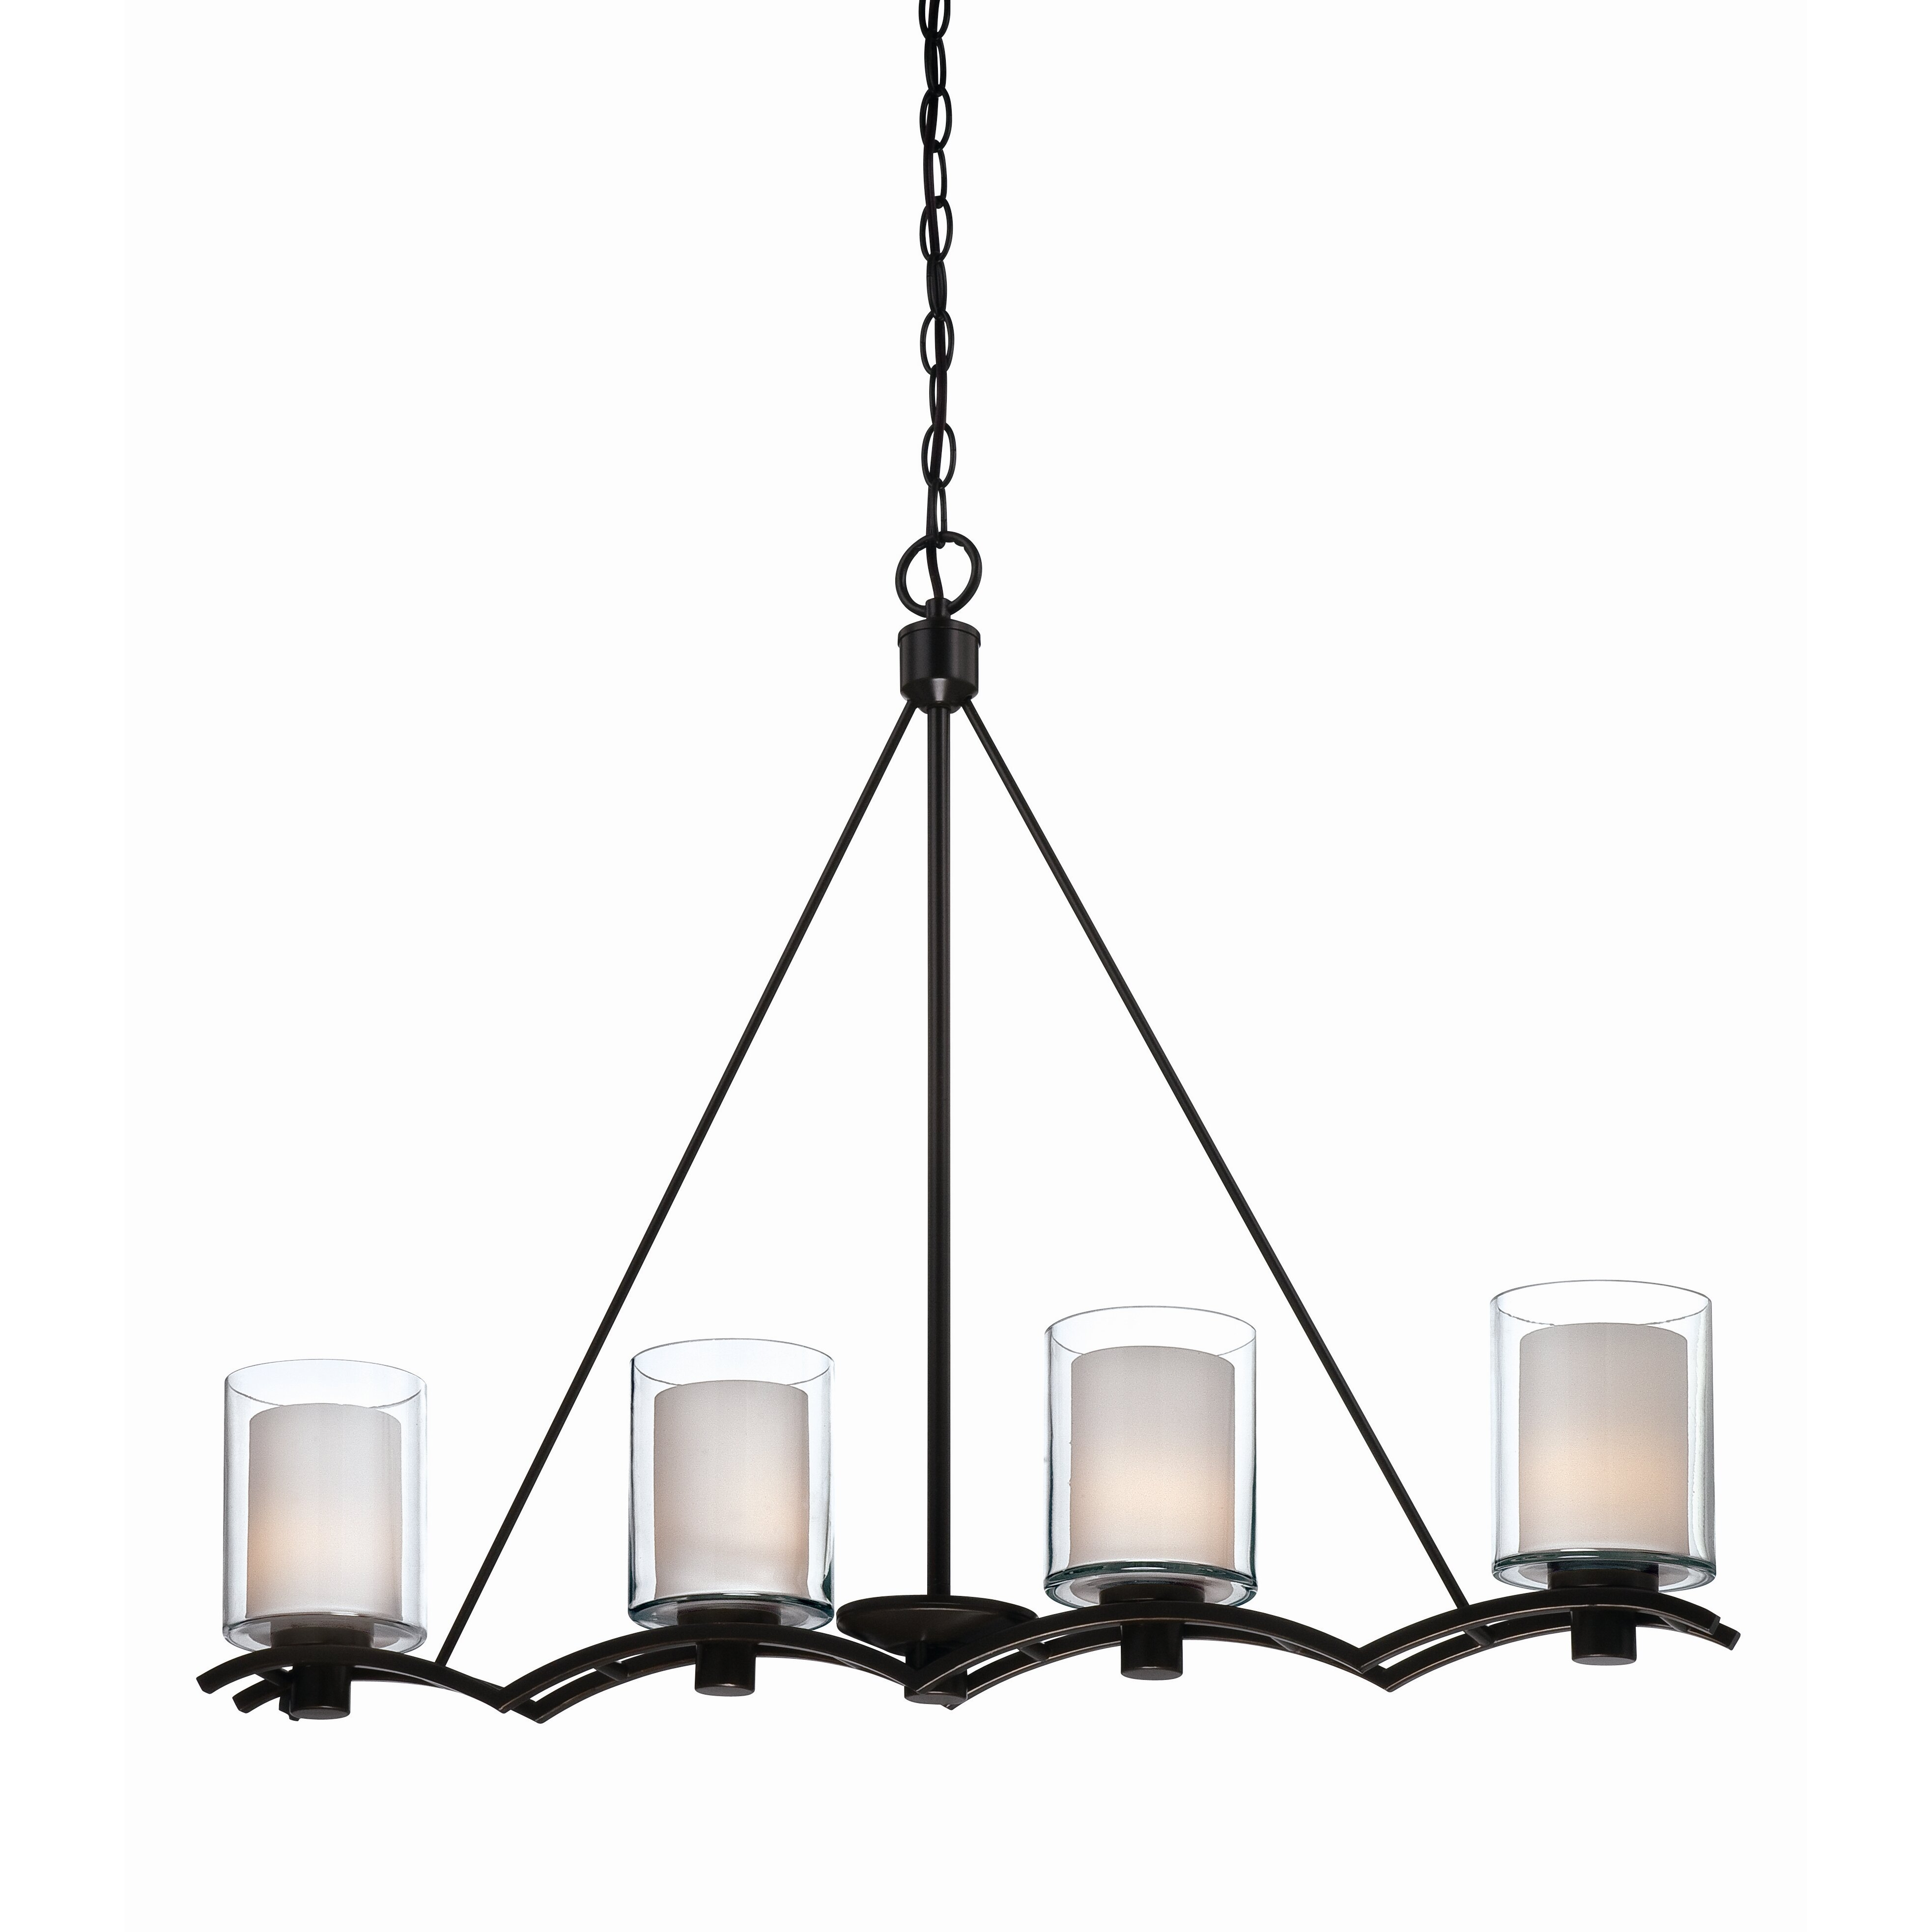 Kitchen Island Pendant Lighting: Artcraft Lighting Andover 4 Light Kitchen Island Pendant